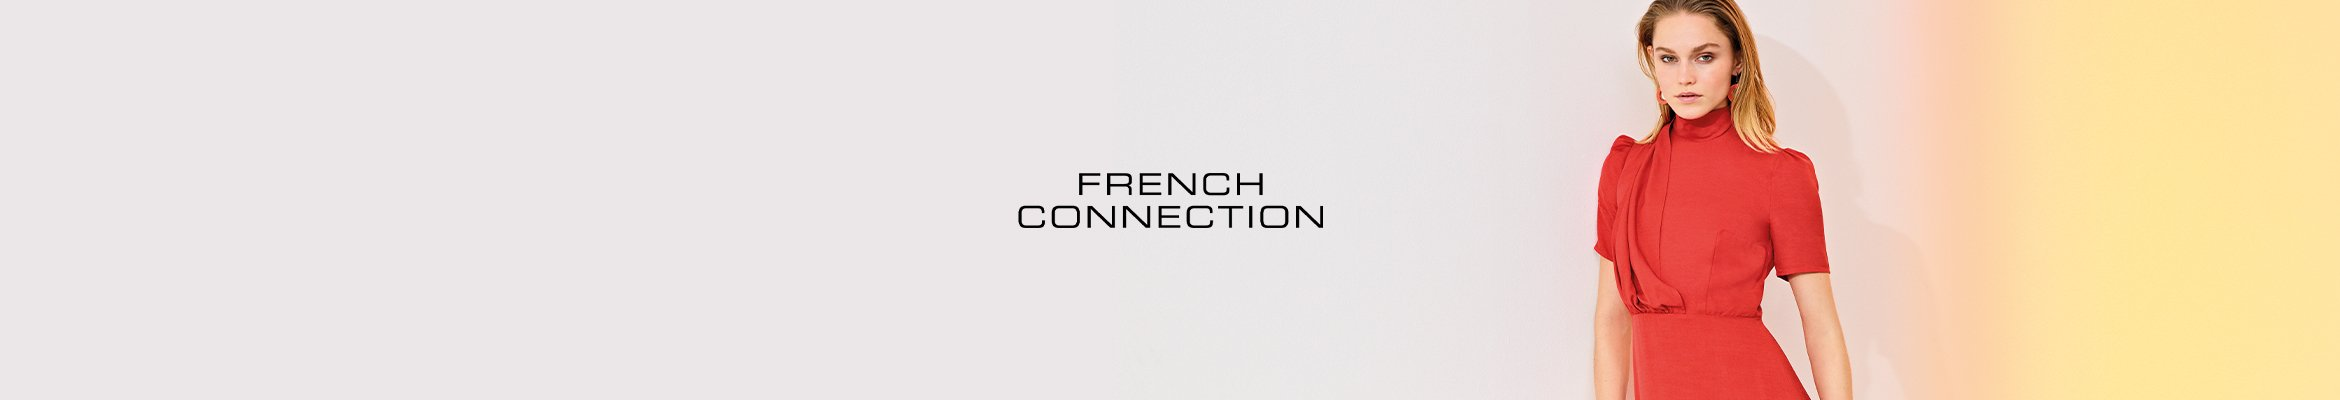 French_connection_w